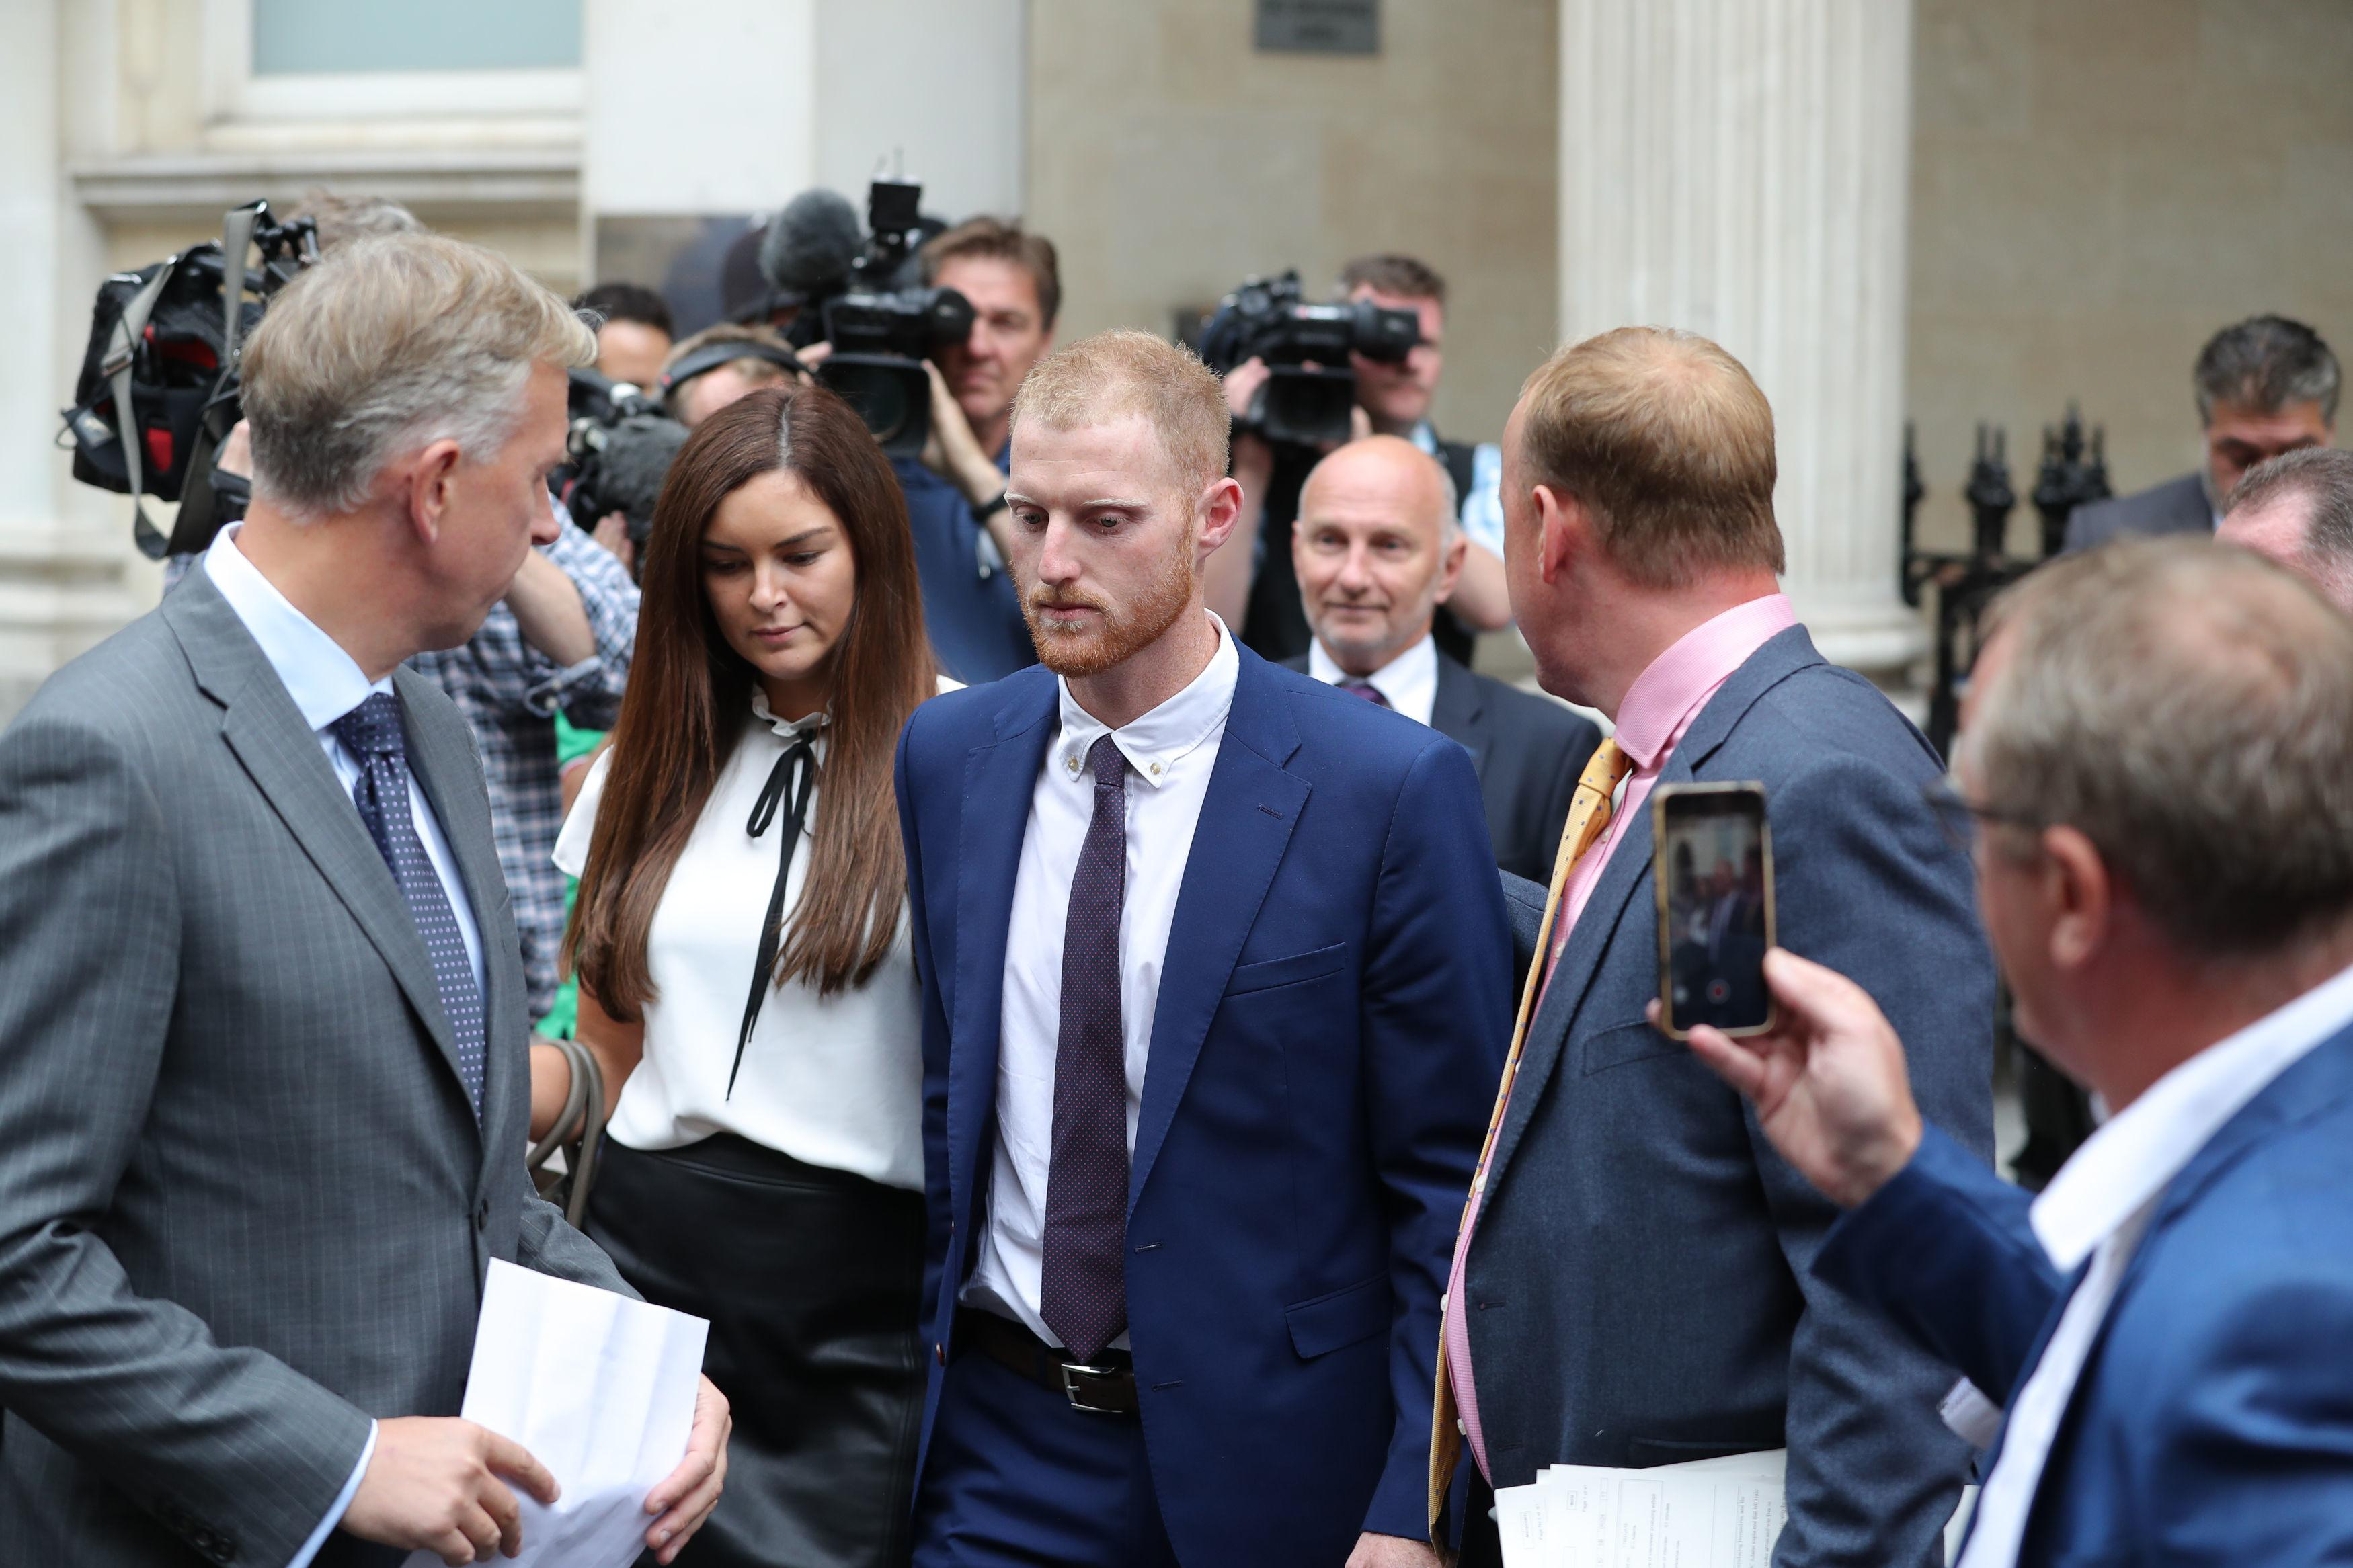 Ben Stokes was cleared of affray after a high-profile trial